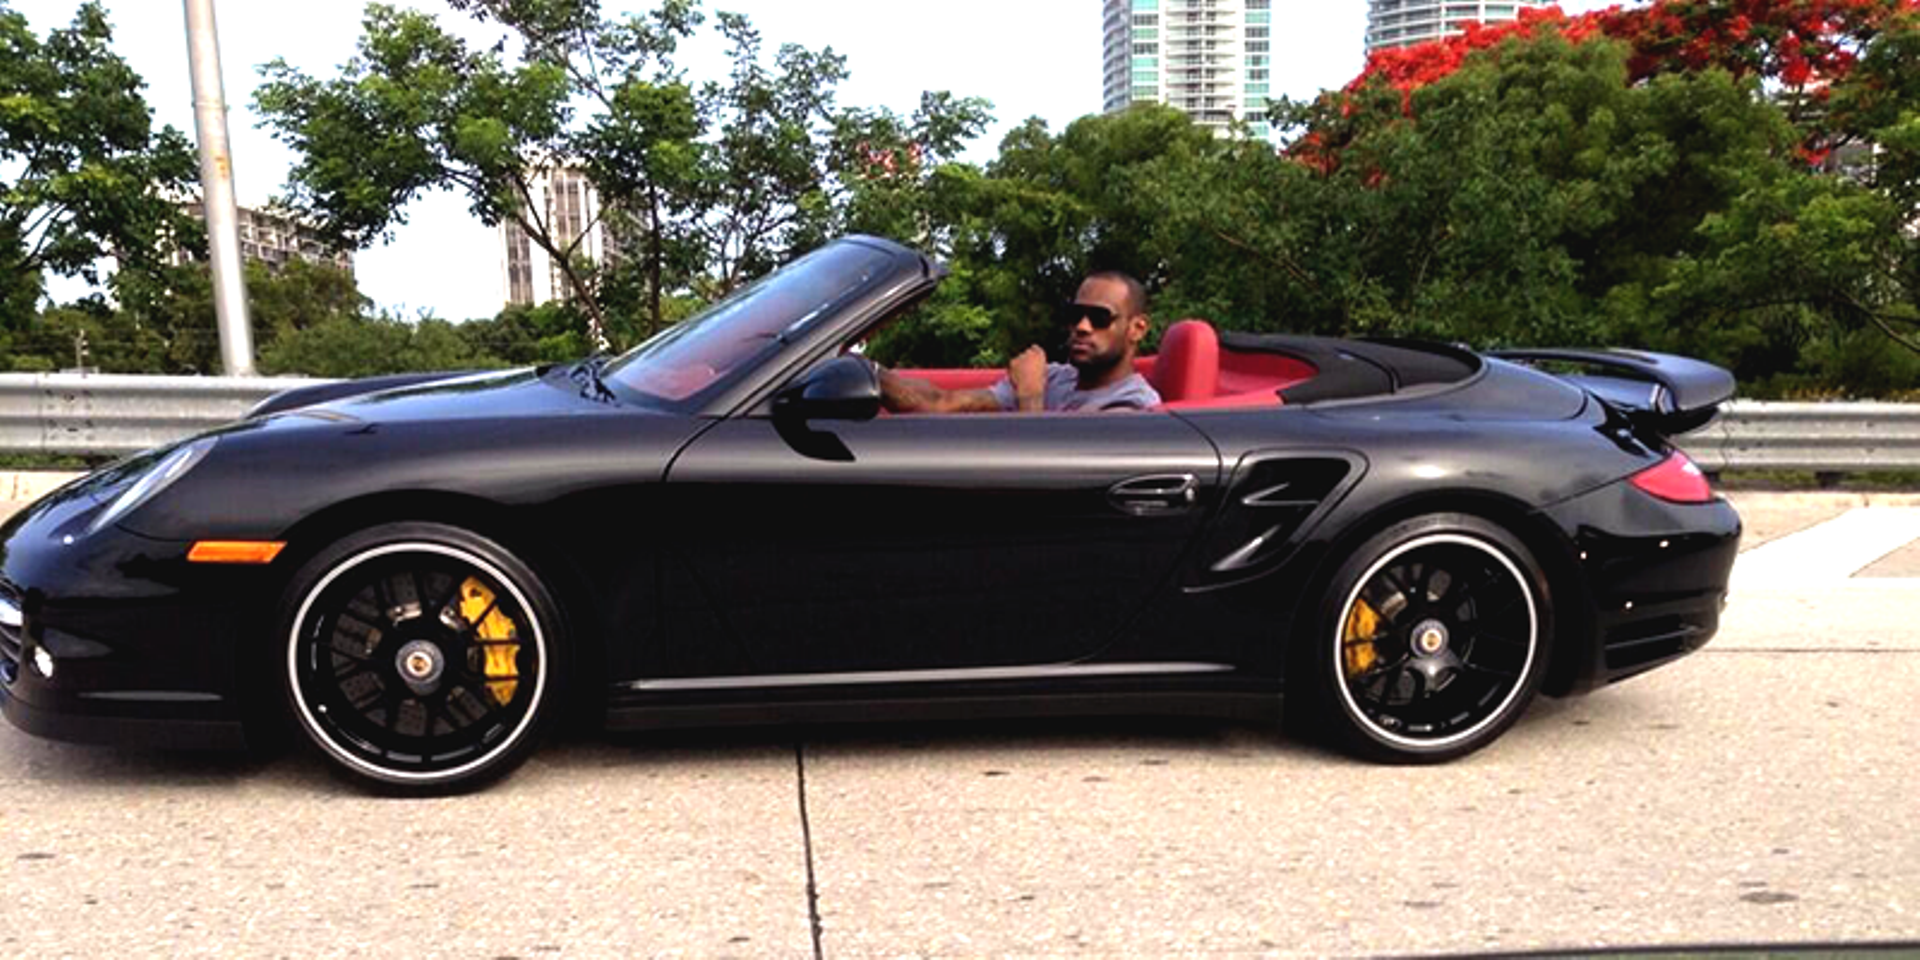 LeBron James Cars Lebron james, Porsche 911 s, Porsche